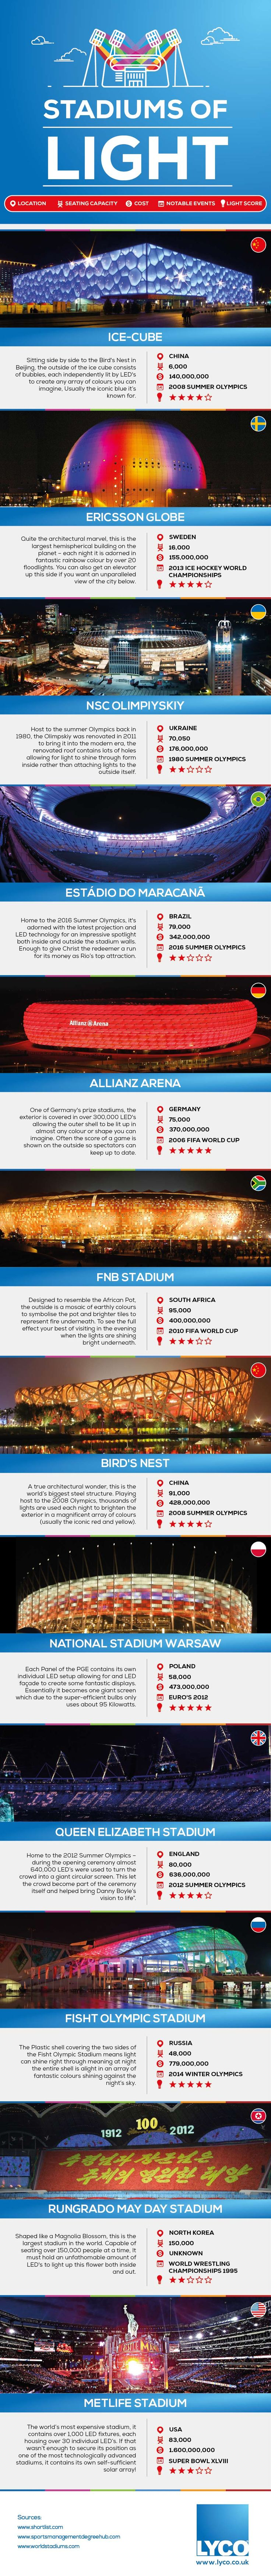 Stadiums of Light #Infographic #Travel